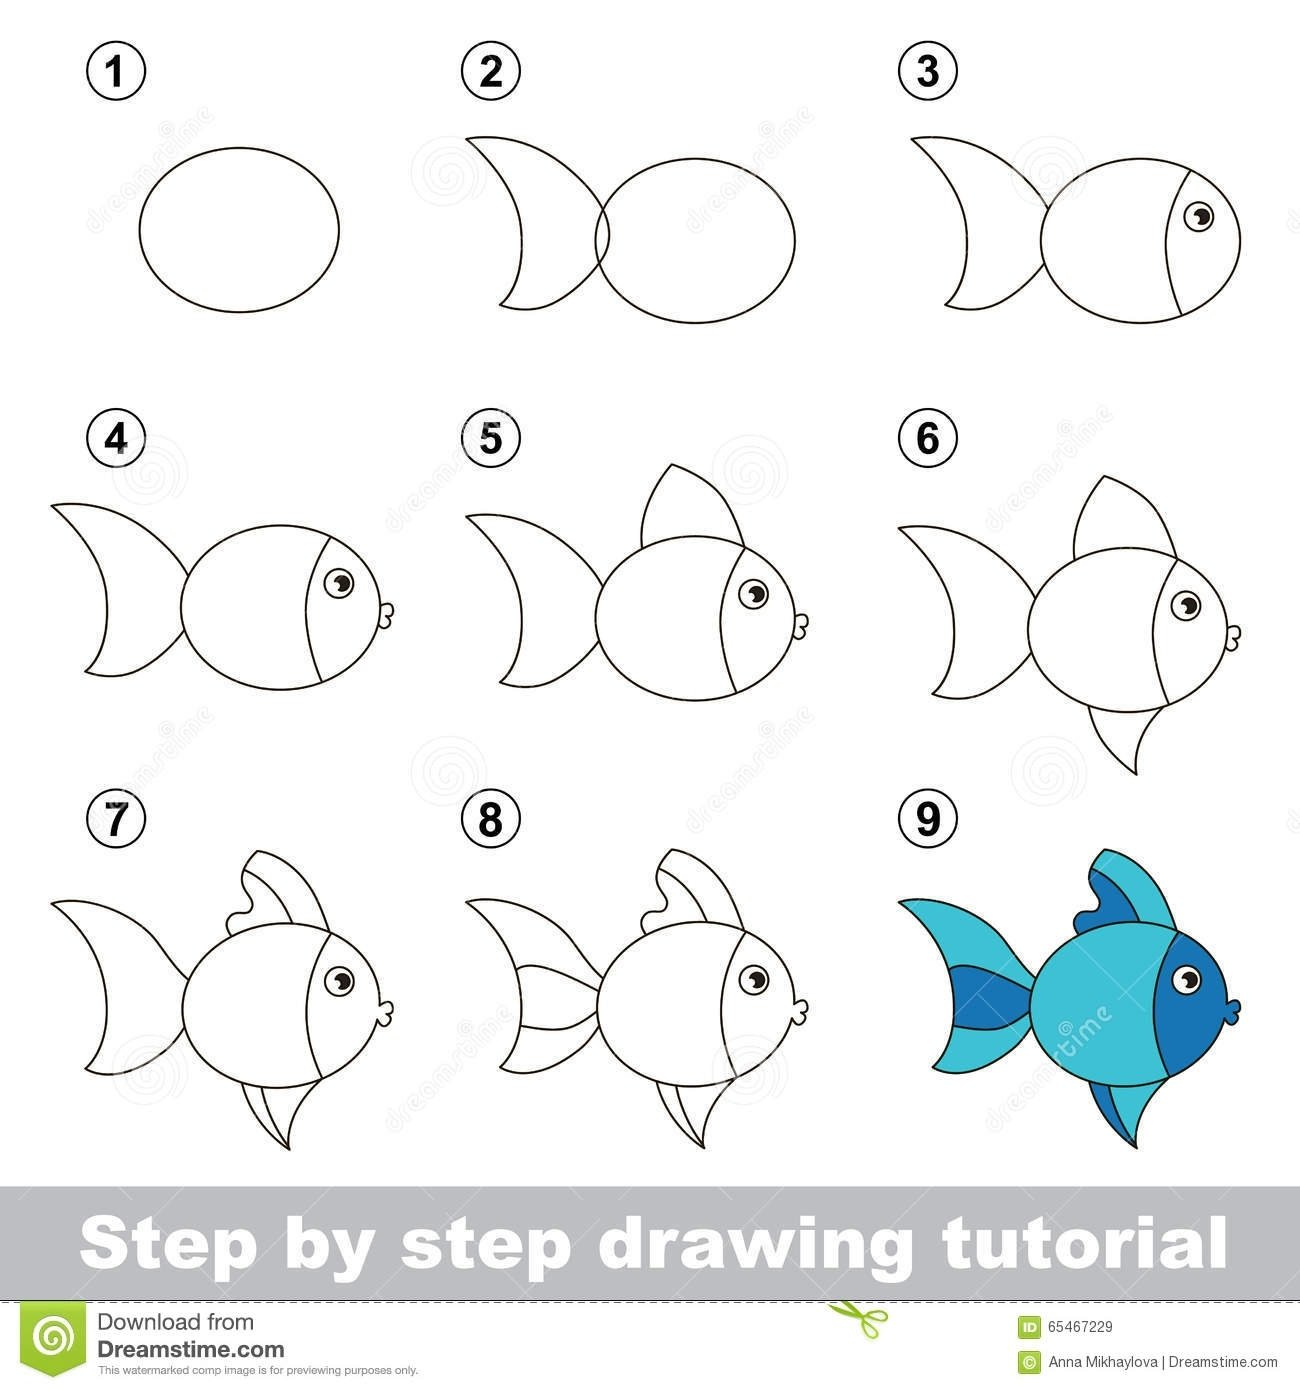 10 Elegant Drawing Ideas For Kids Step By Step drawing for kids stepstep drawing tutorial how to draw cute fish 2021